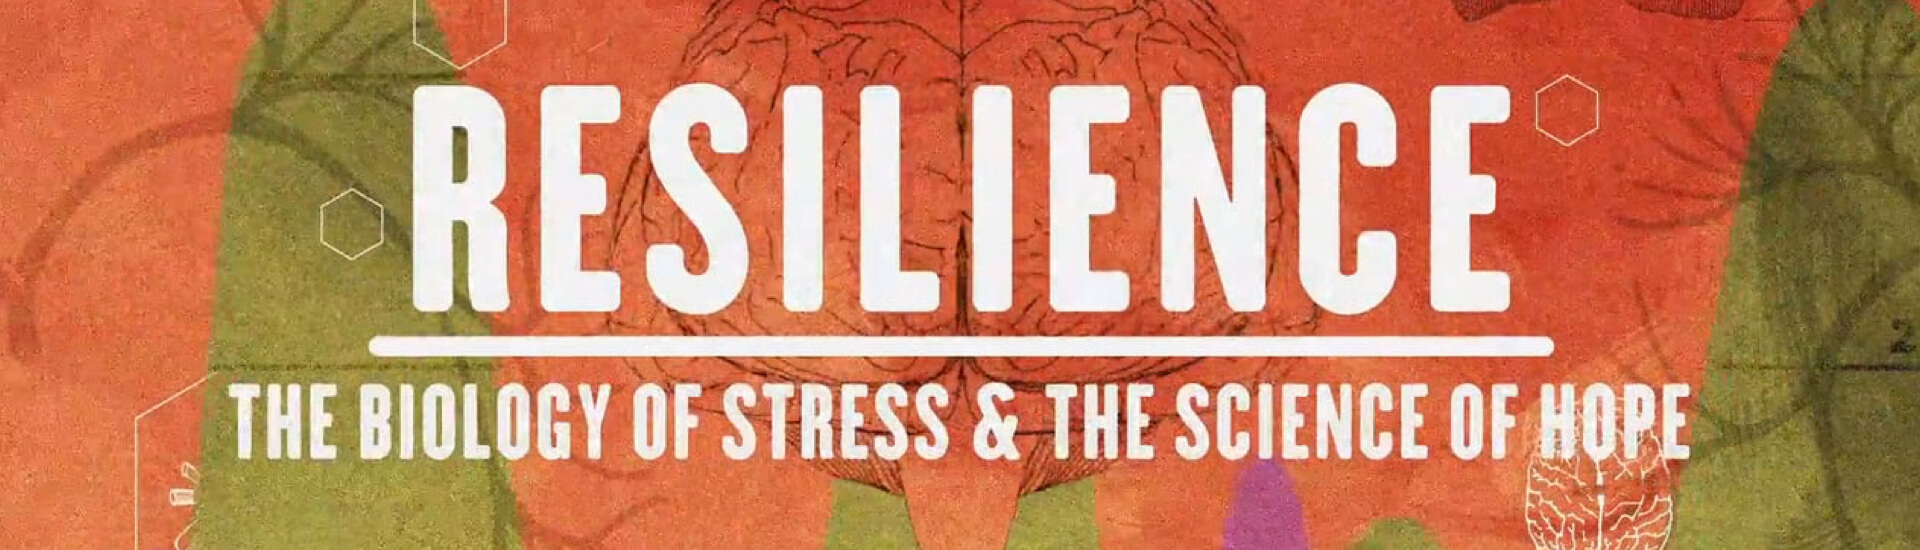 Resilience, the biology of stress and the science of hope